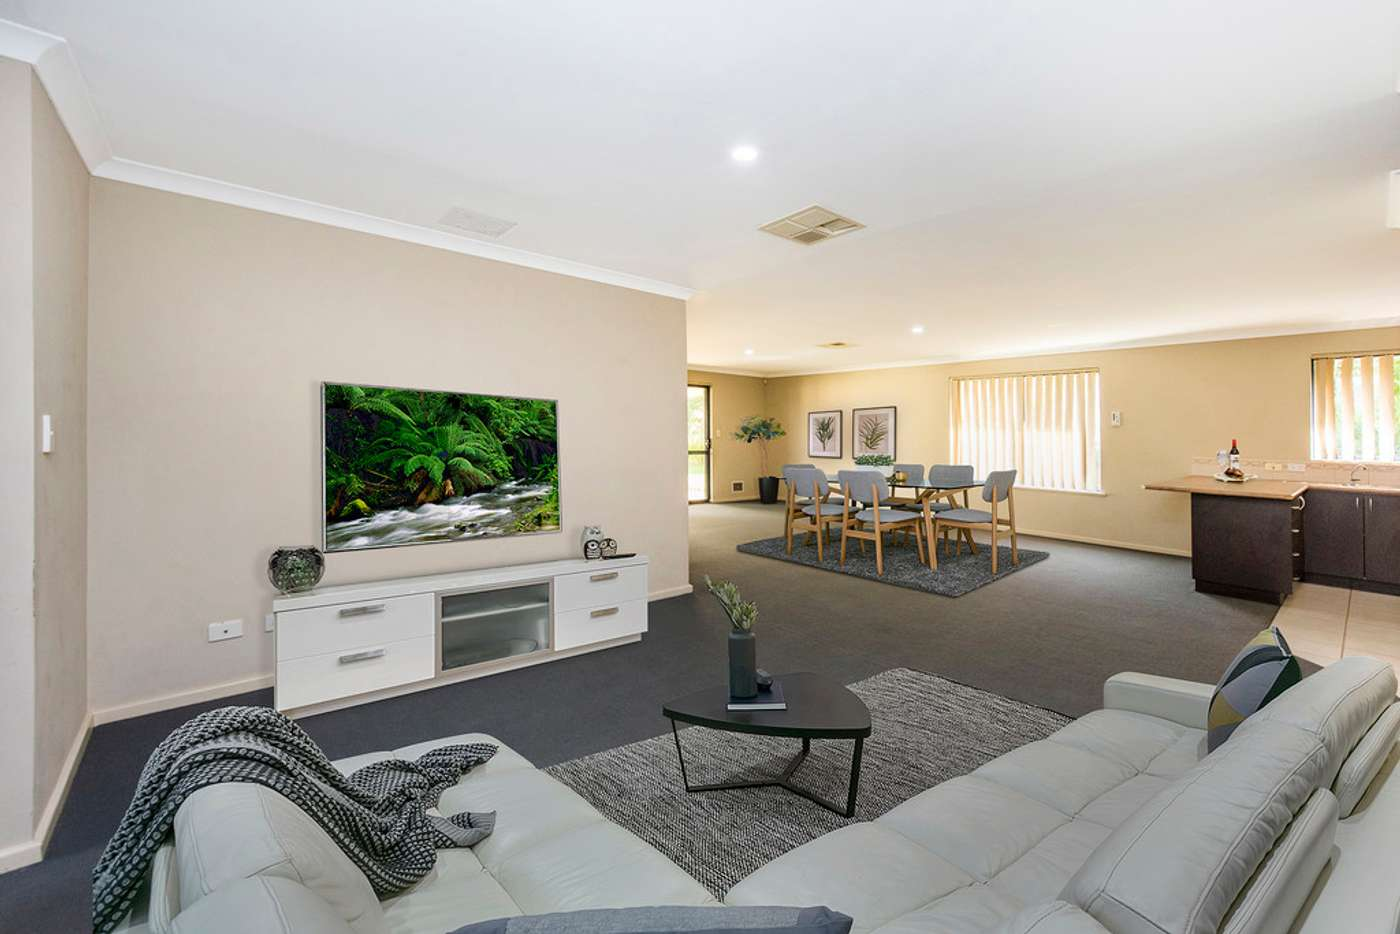 Seventh view of Homely house listing, 62 Yandella Promenade, Tapping WA 6065